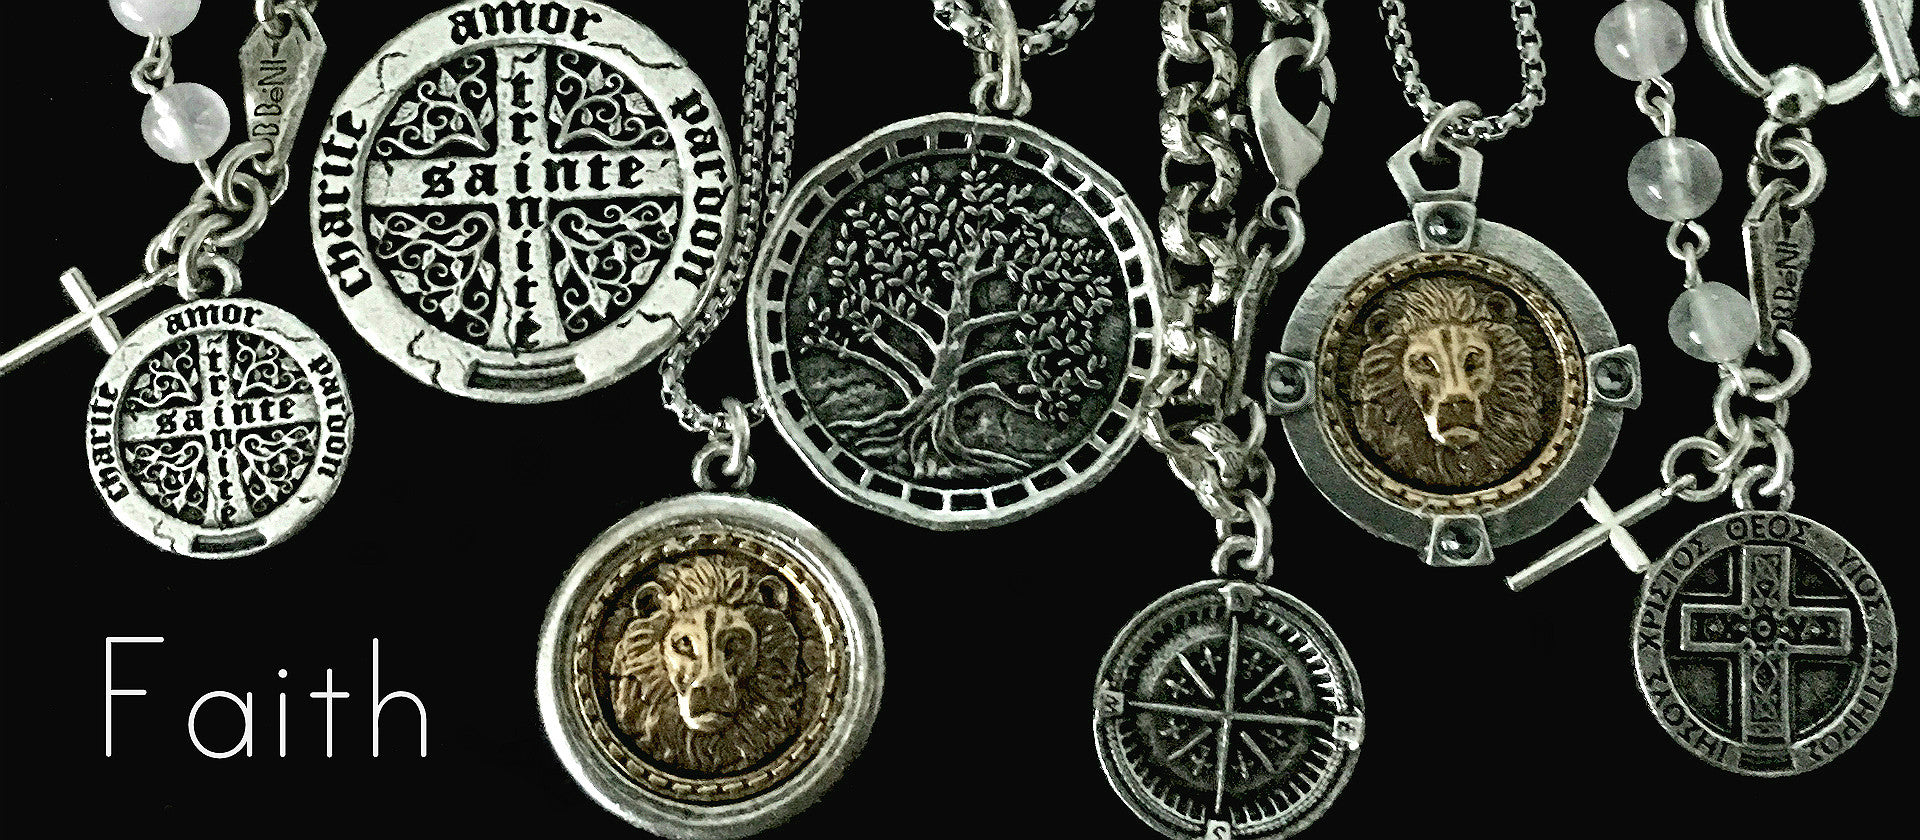 Bbeni silver Christian Faith necklaces